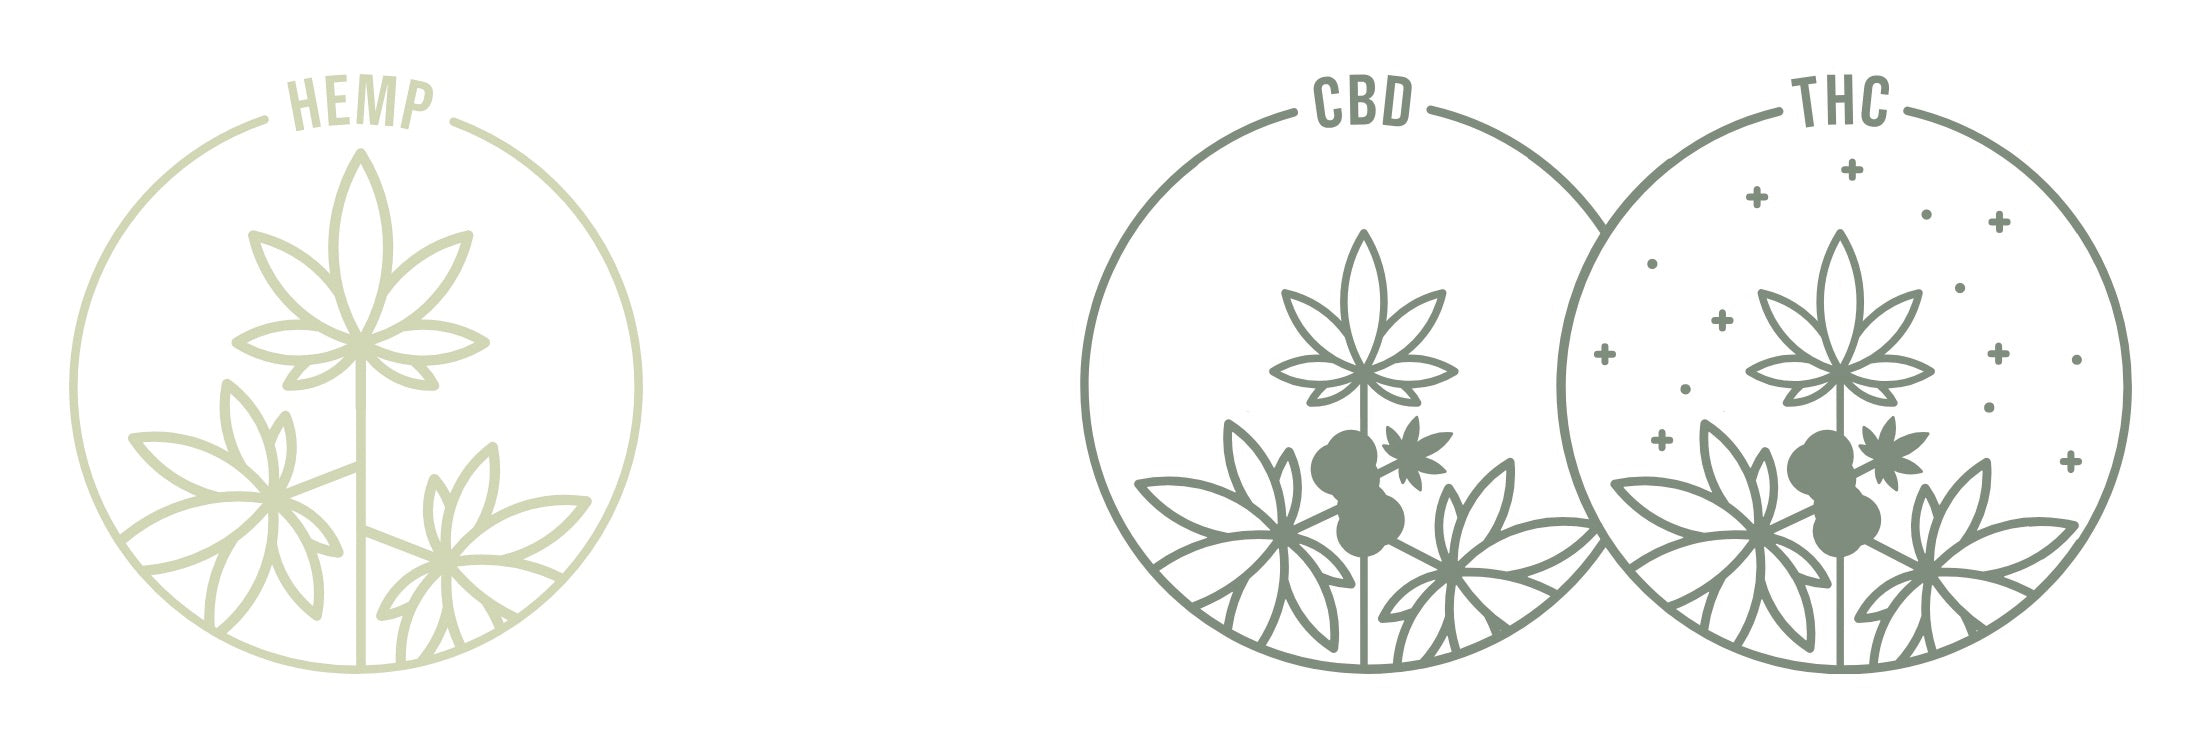 Hemp CBD THC - The Cannabis Company